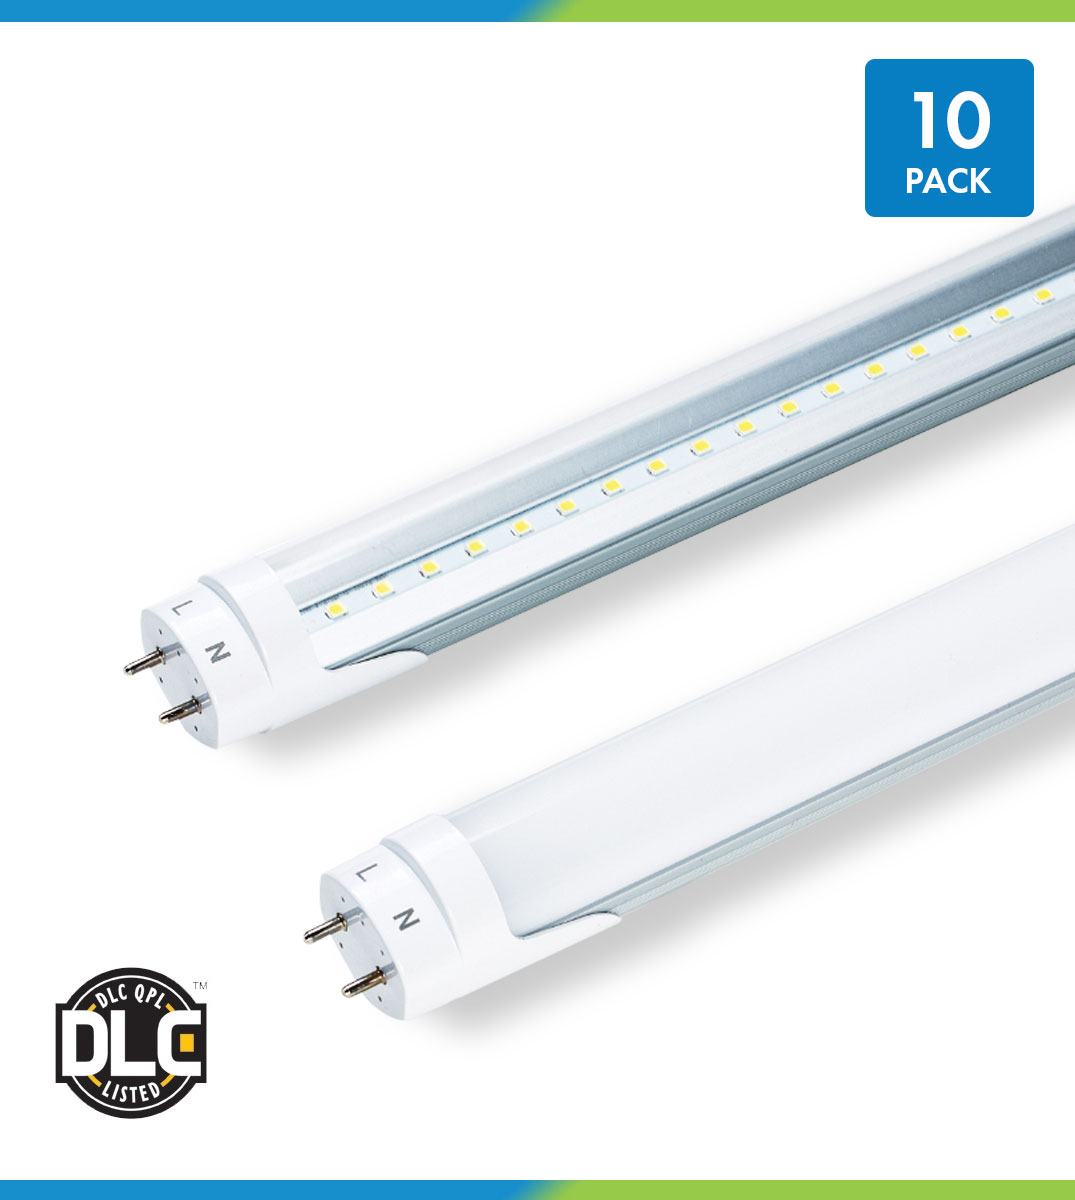 hight resolution of t8 led hybrid tubes 10 pack ballast compatible bypass 4 foot